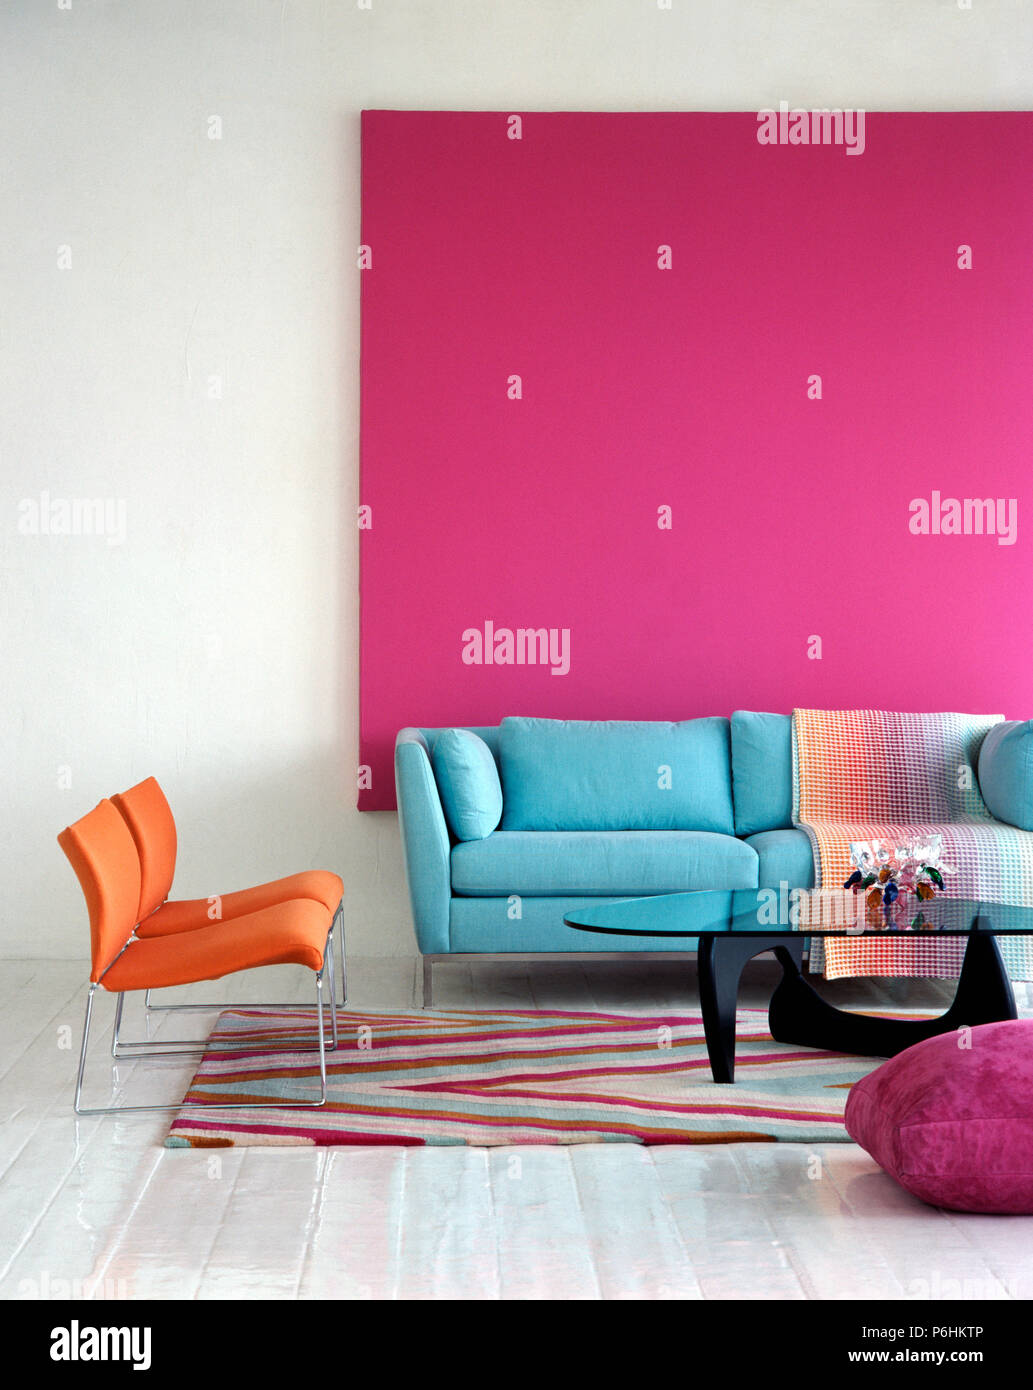 Superbe Pastel Blue Sofa Against Bright Pink Picture In Modern Living Room With  Orange Chairs And Glass Topped Coffee Table